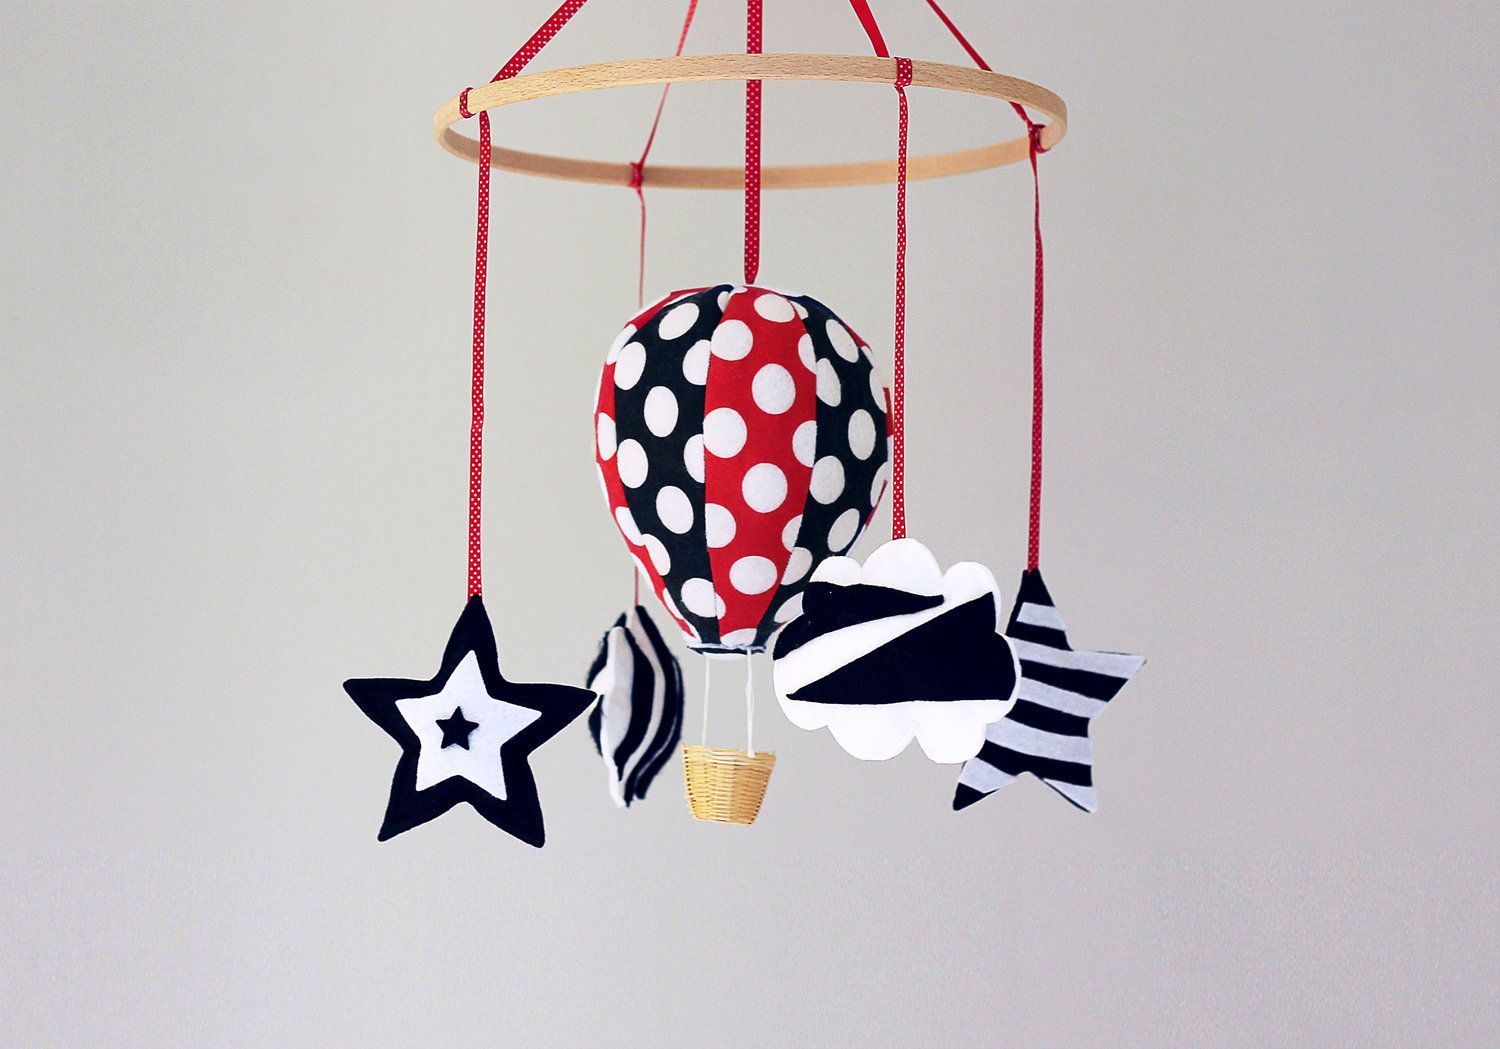 High Contrast Red White Black Baby Stimulation Development Newborn Mobile Baby Shower Gift Hot Air Balloon Mobil New Baby Products Balloon Mobile Doll Crafts